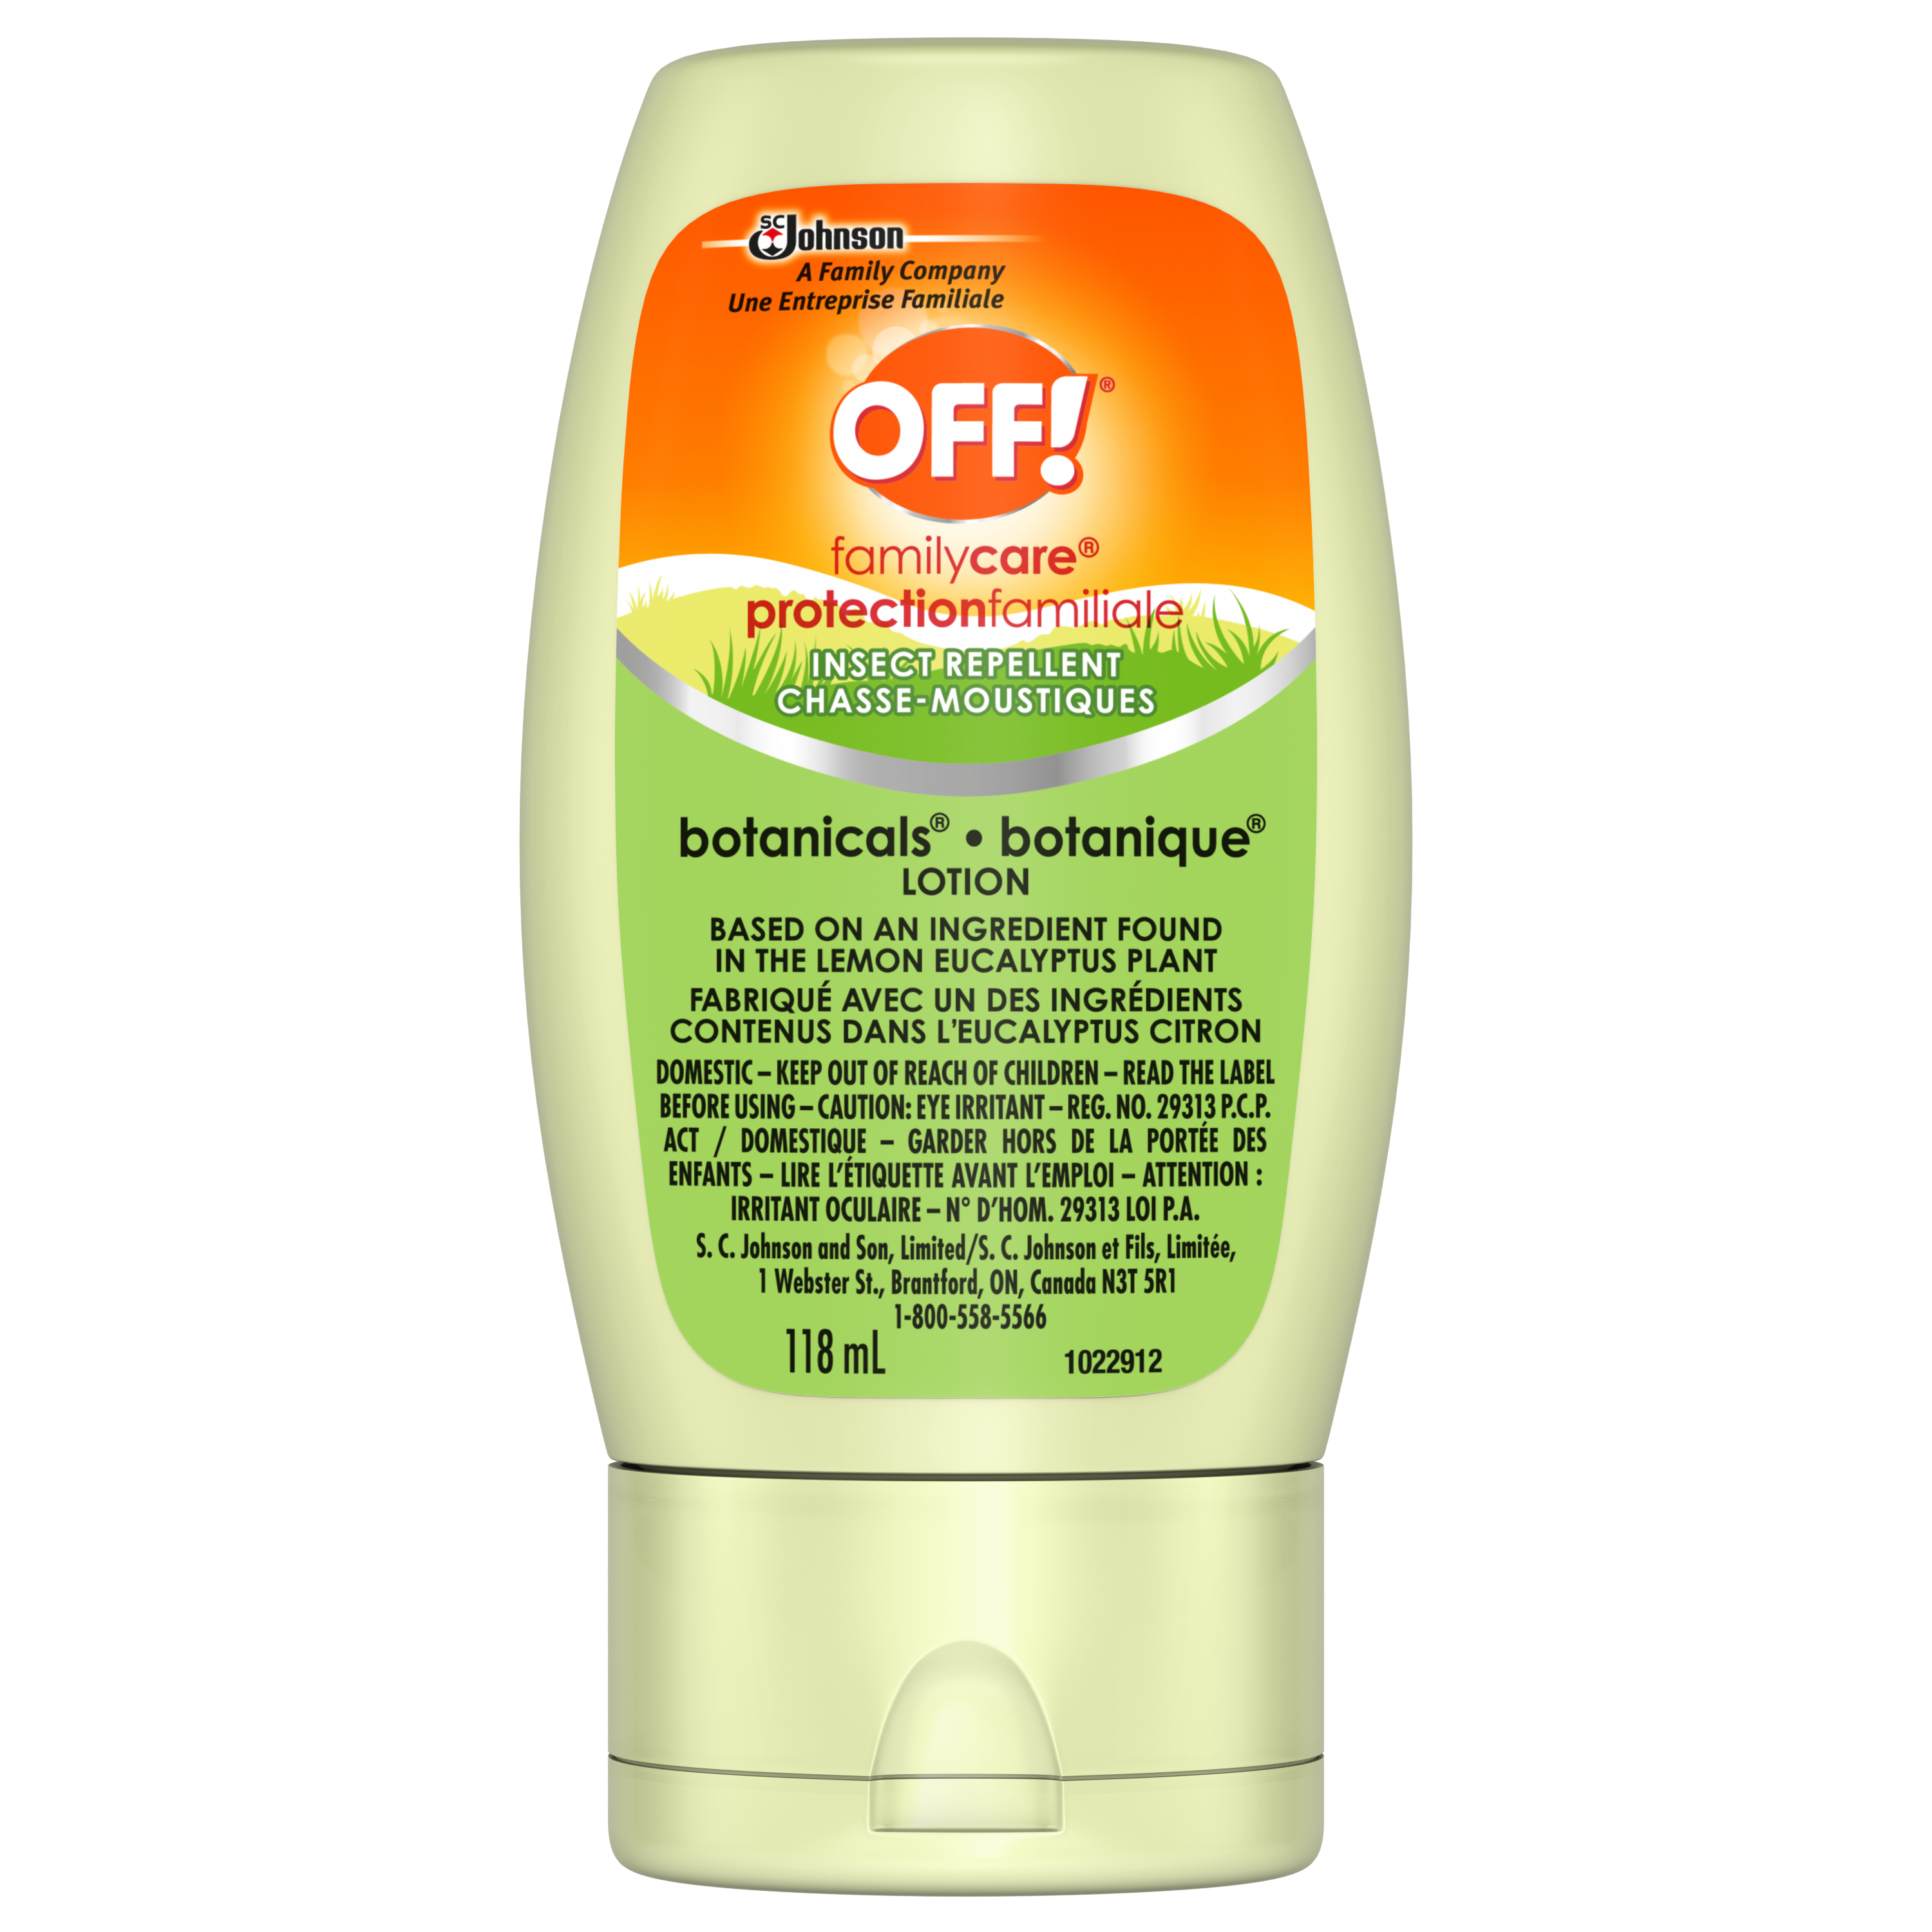 OFF!® Family Care® Botanicals Insect Repellent Lotion